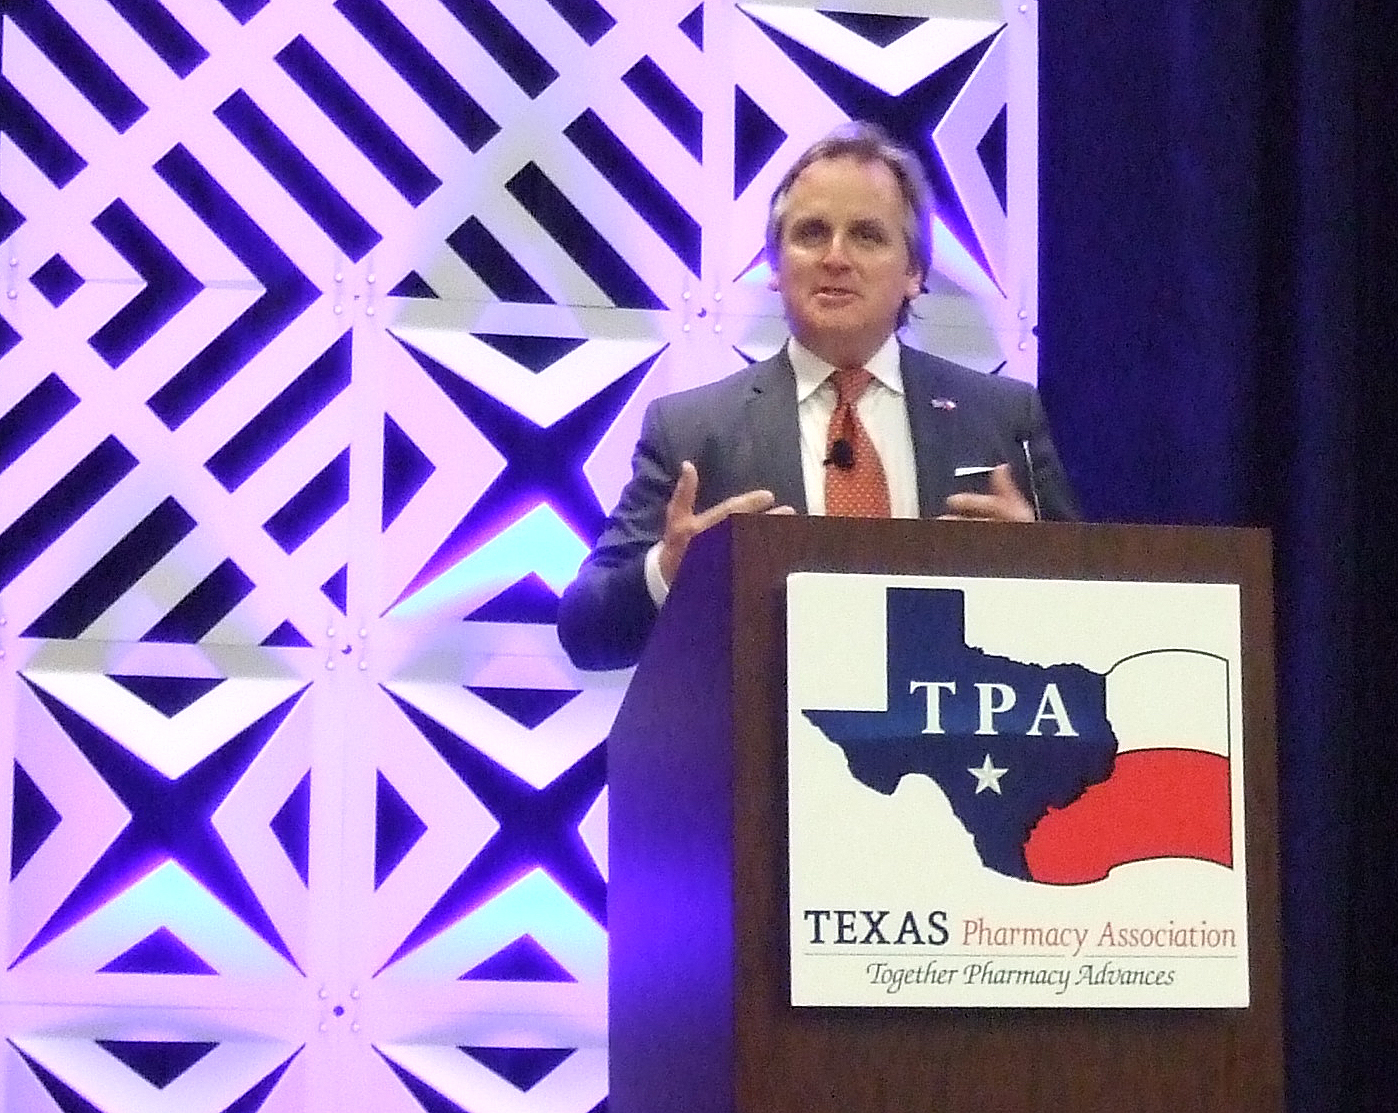 State Sen. Bryan Hughes speaks at the 2019 TPA Conference.